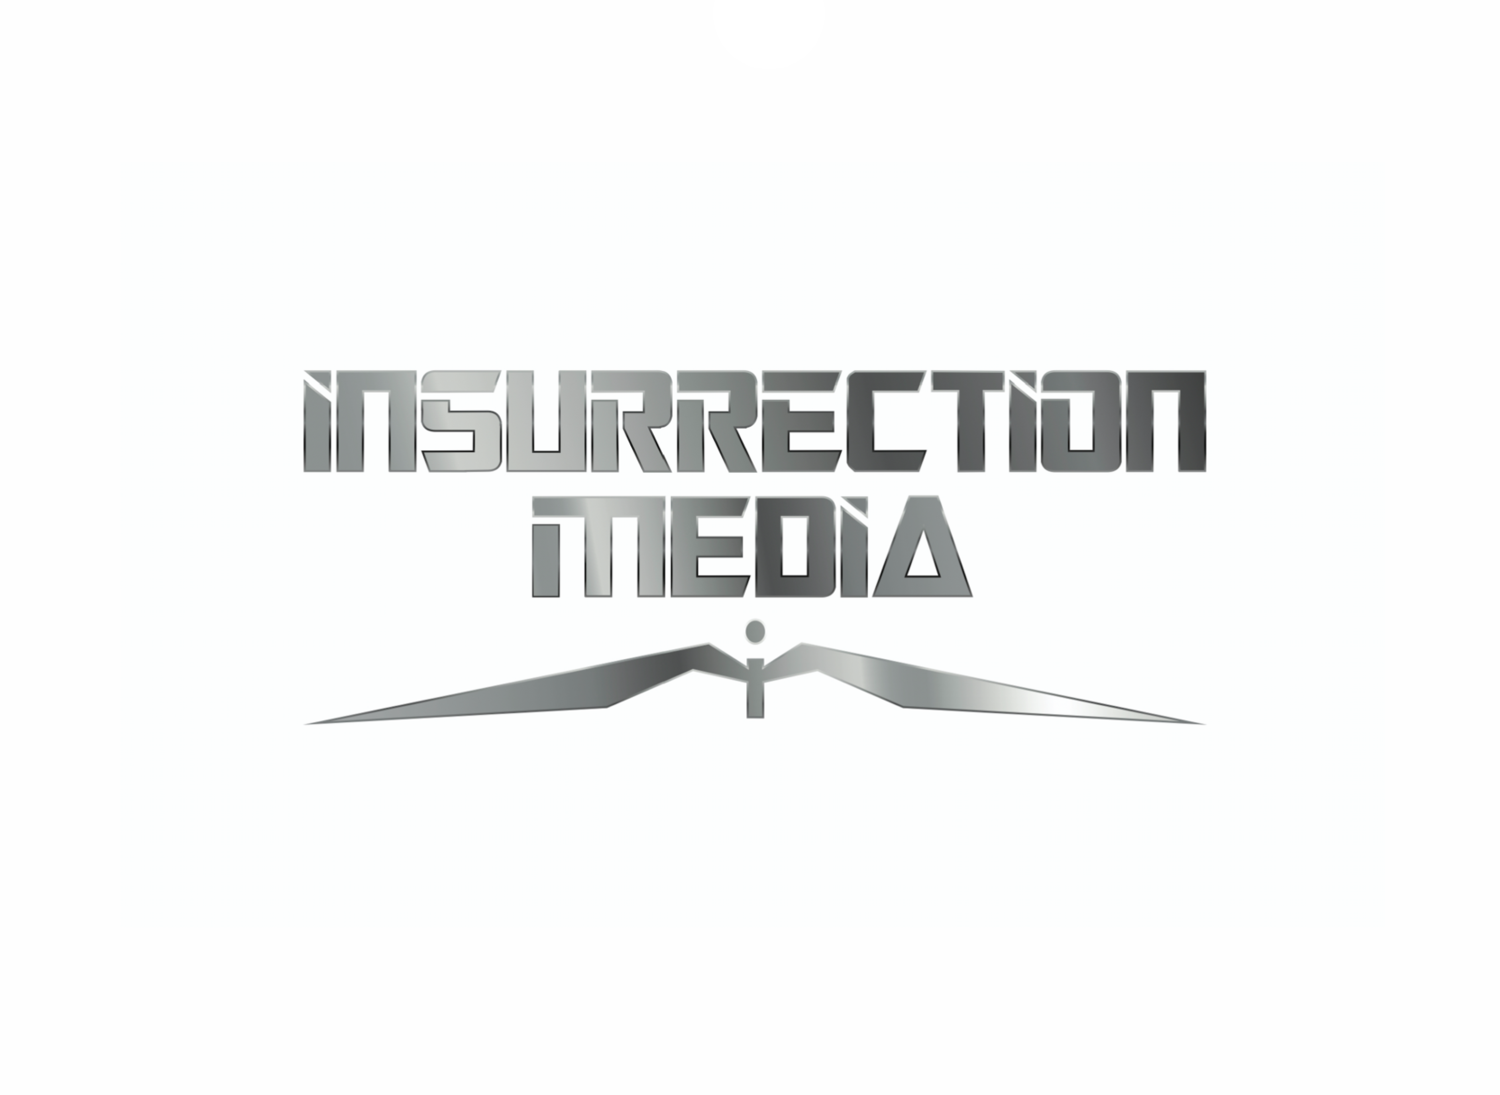 Insurrection Media